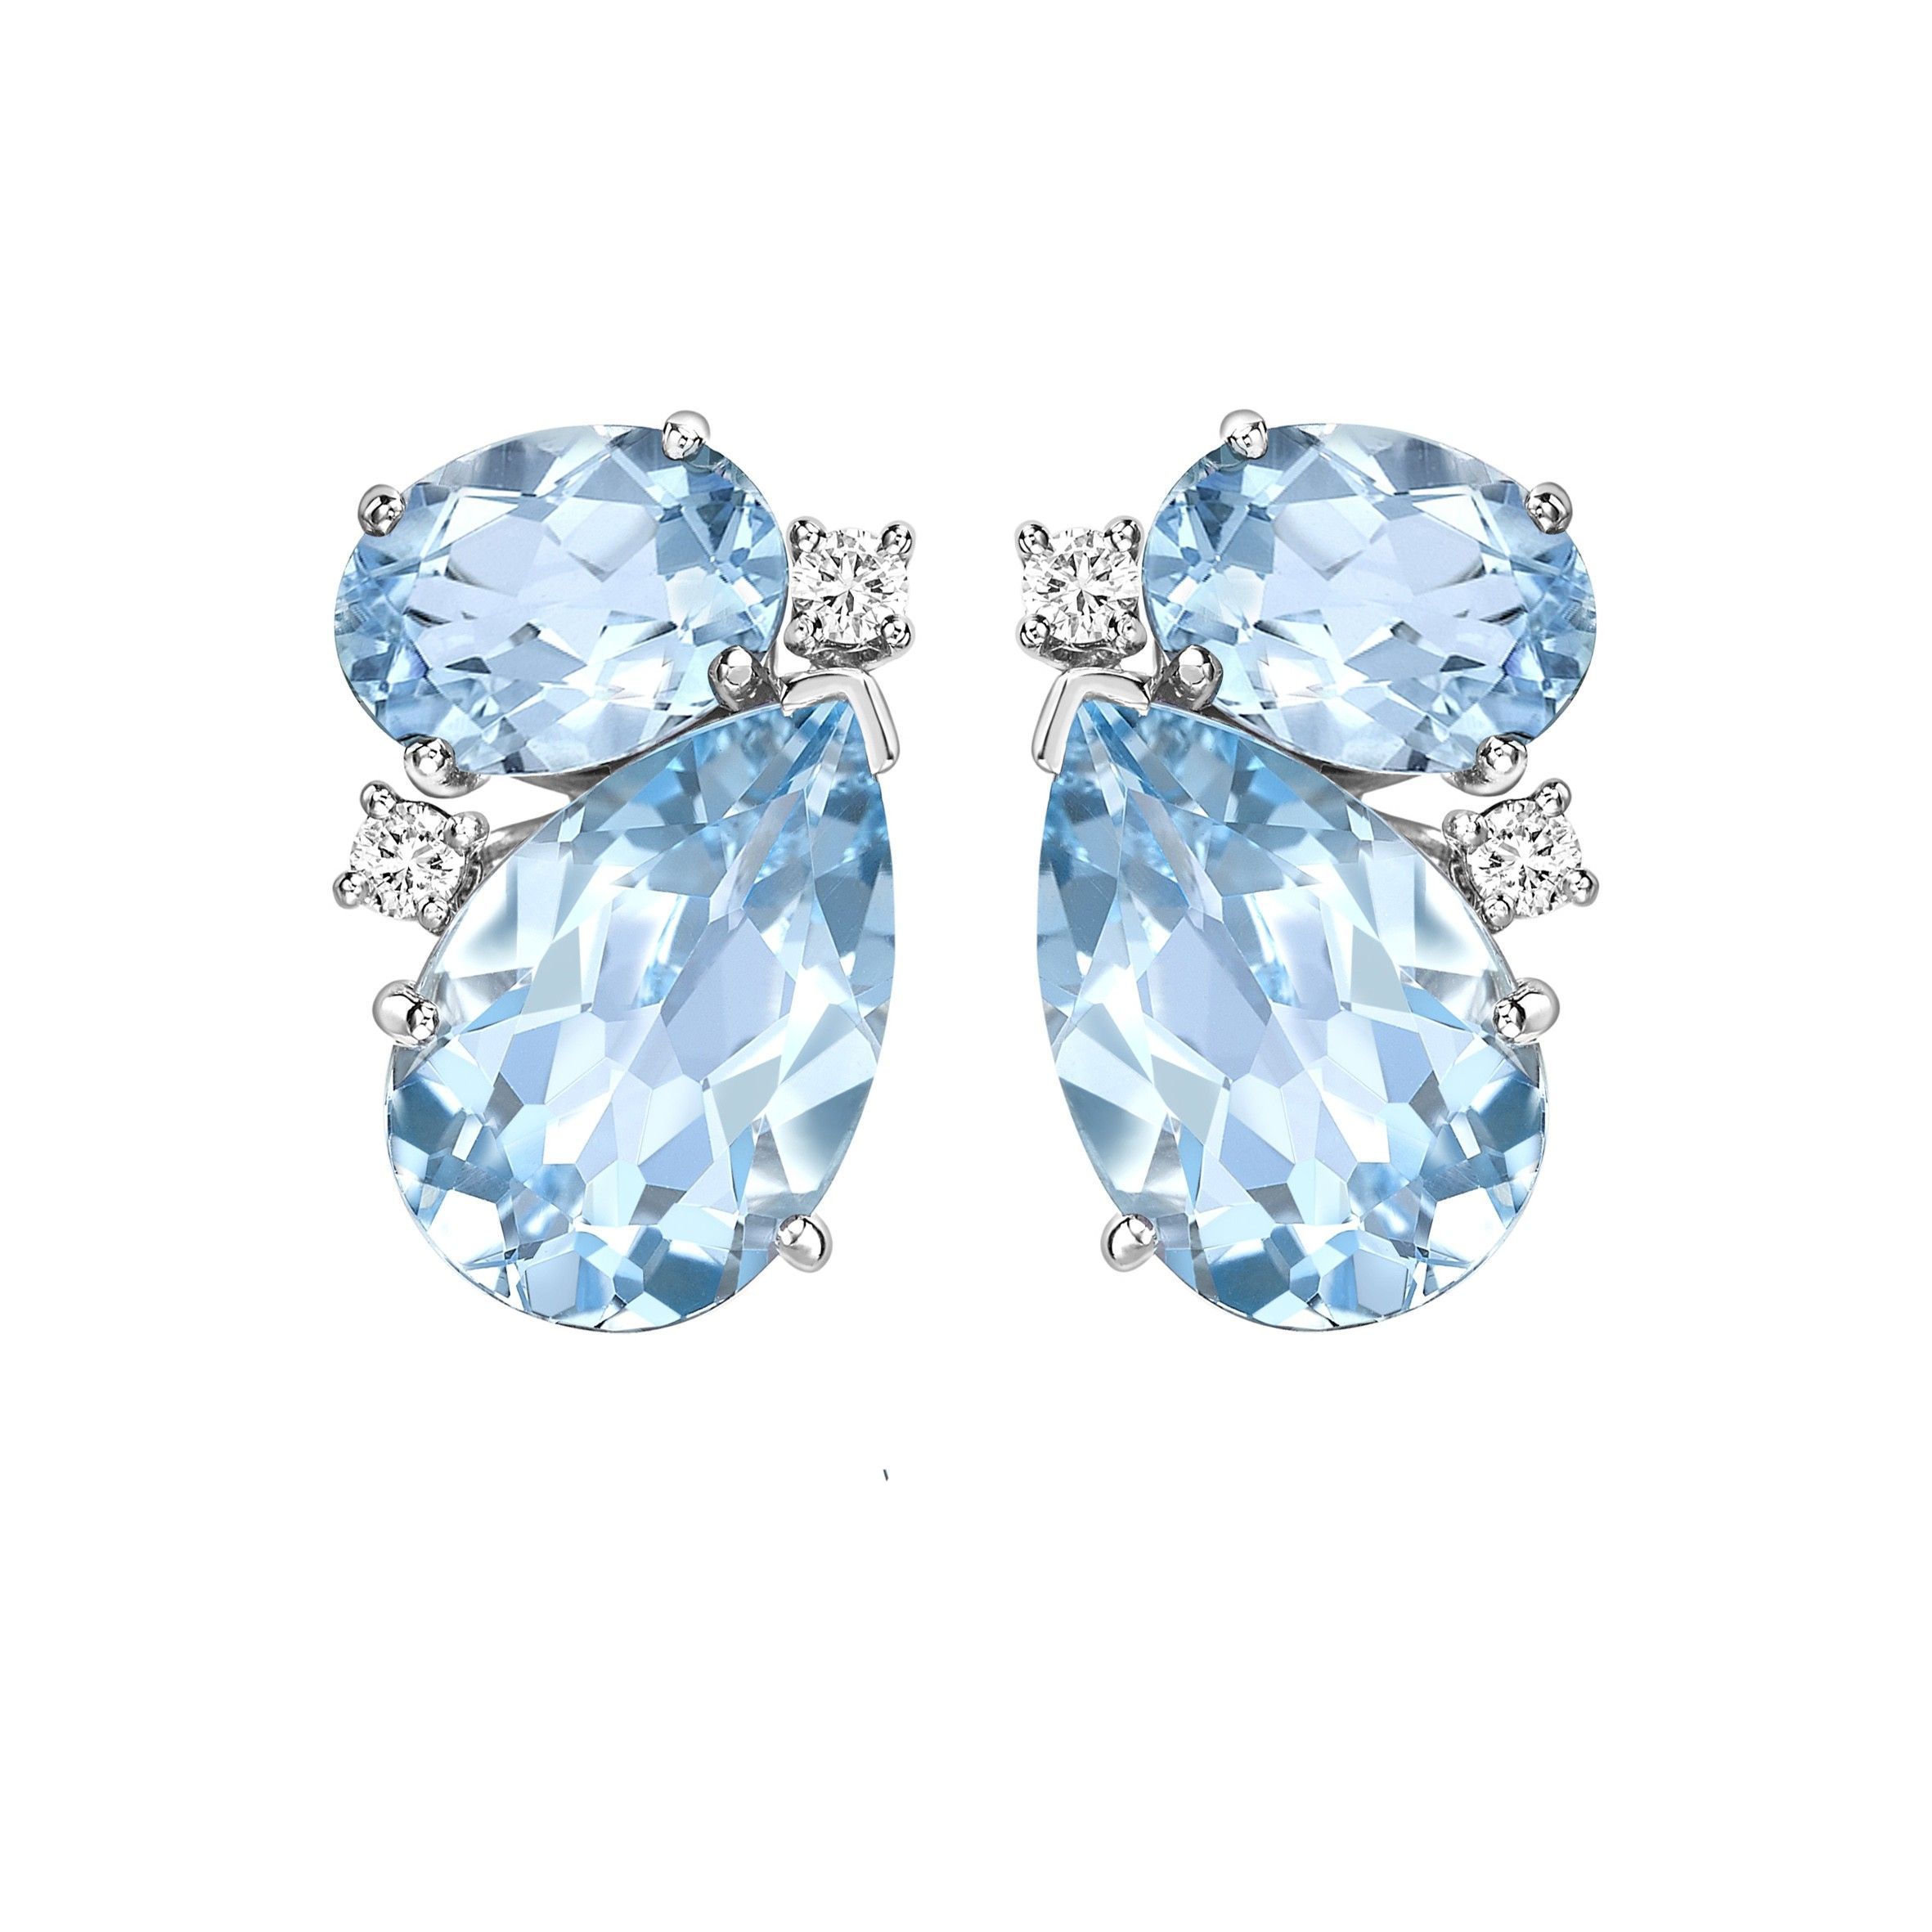 Kiki McDonough Blue Topaz and Diamond Pear and Oval Studs Earrings